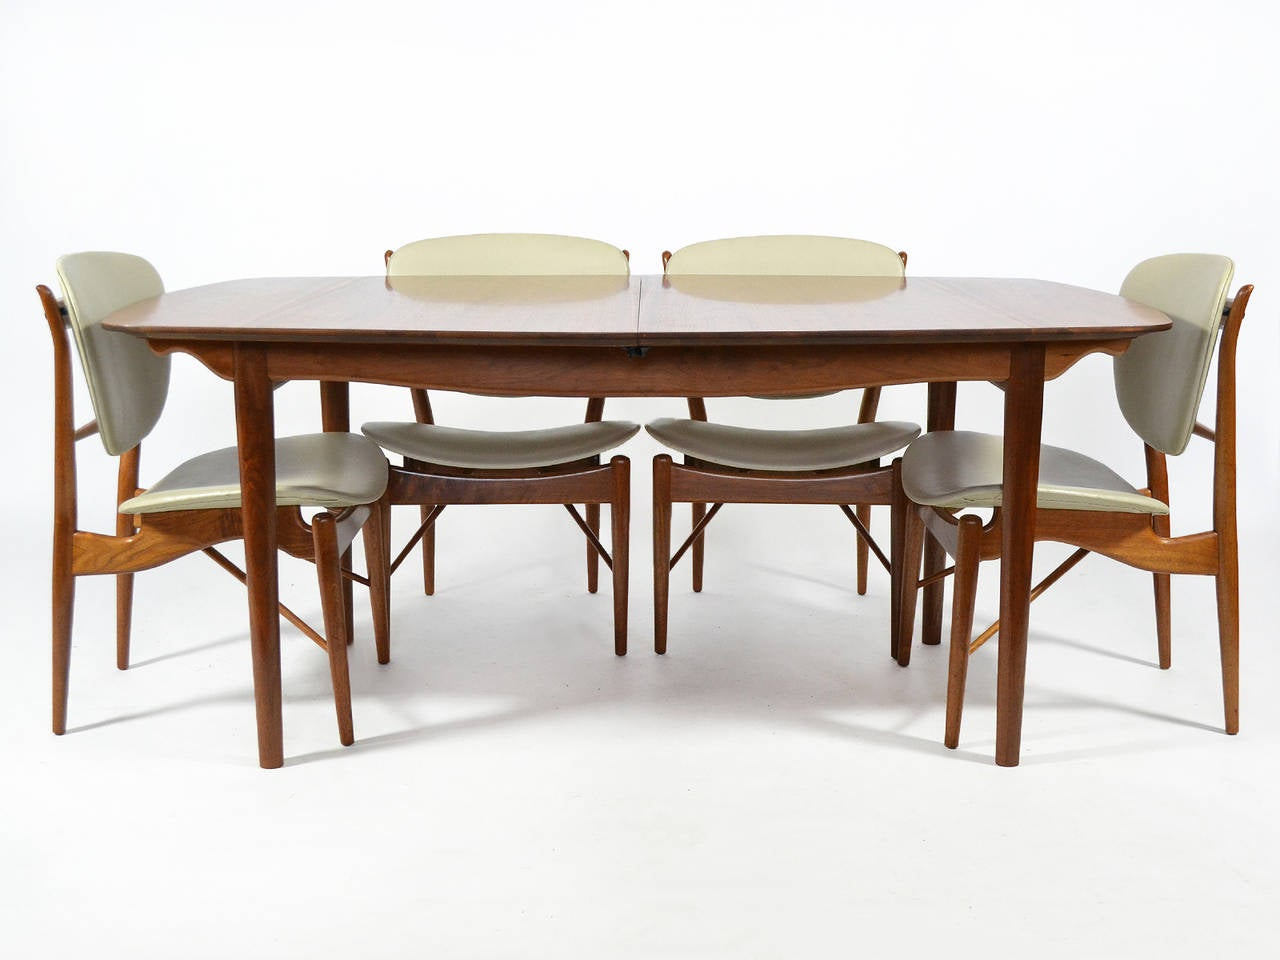 Mid-20th Century Finn Juhl Dining Table and Chairs For Sale